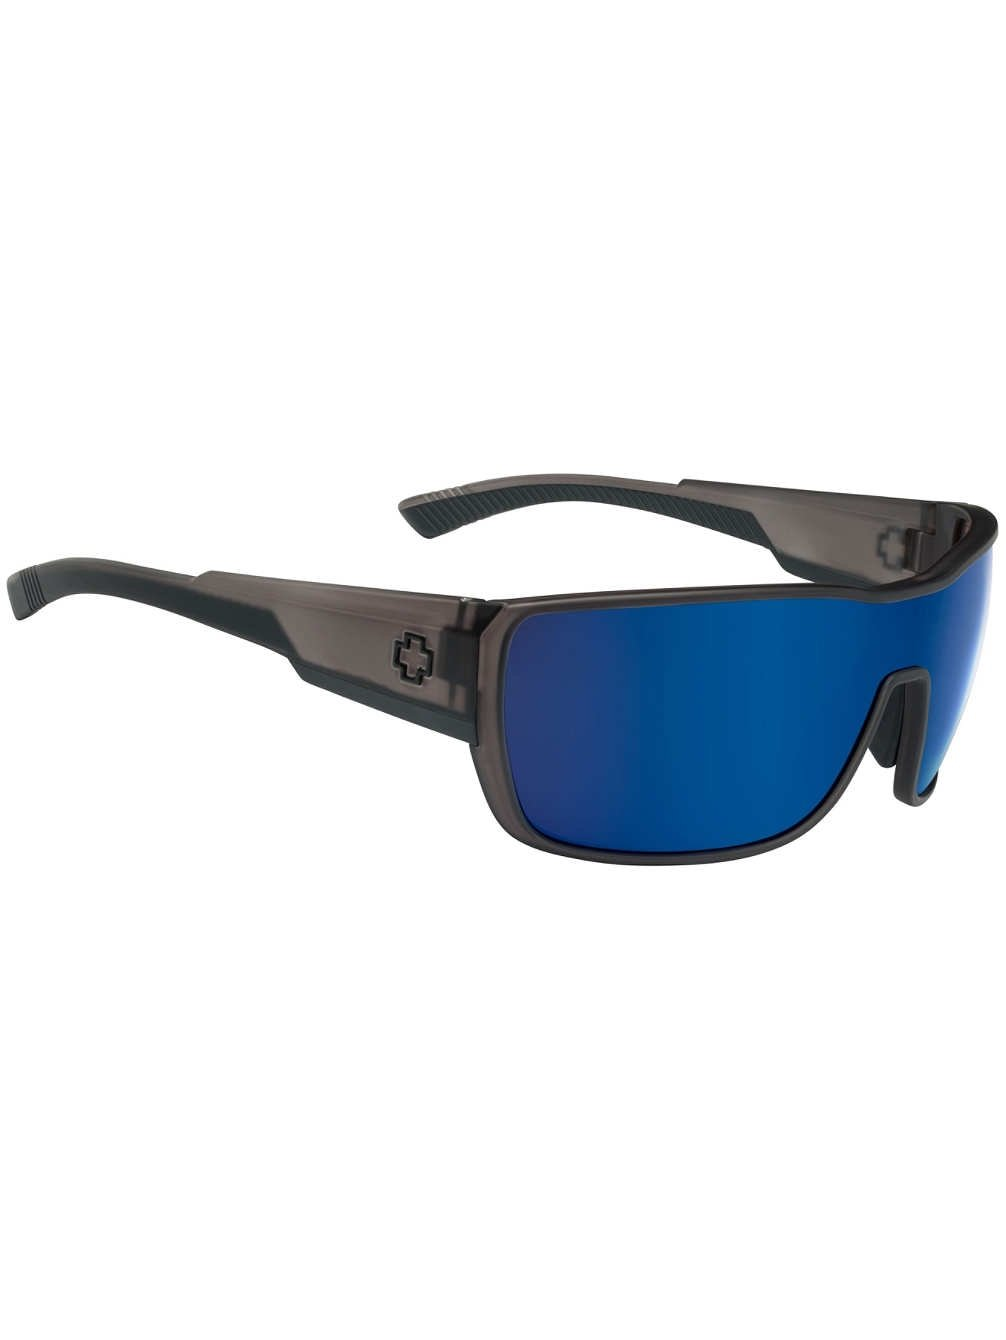 SPY Optic Tron 2 Sunglasses for Men and for Women | Polarized Styles Available | Oversized Frame with Patented Detail Boosting Happy Lens Tech for Pure Performance